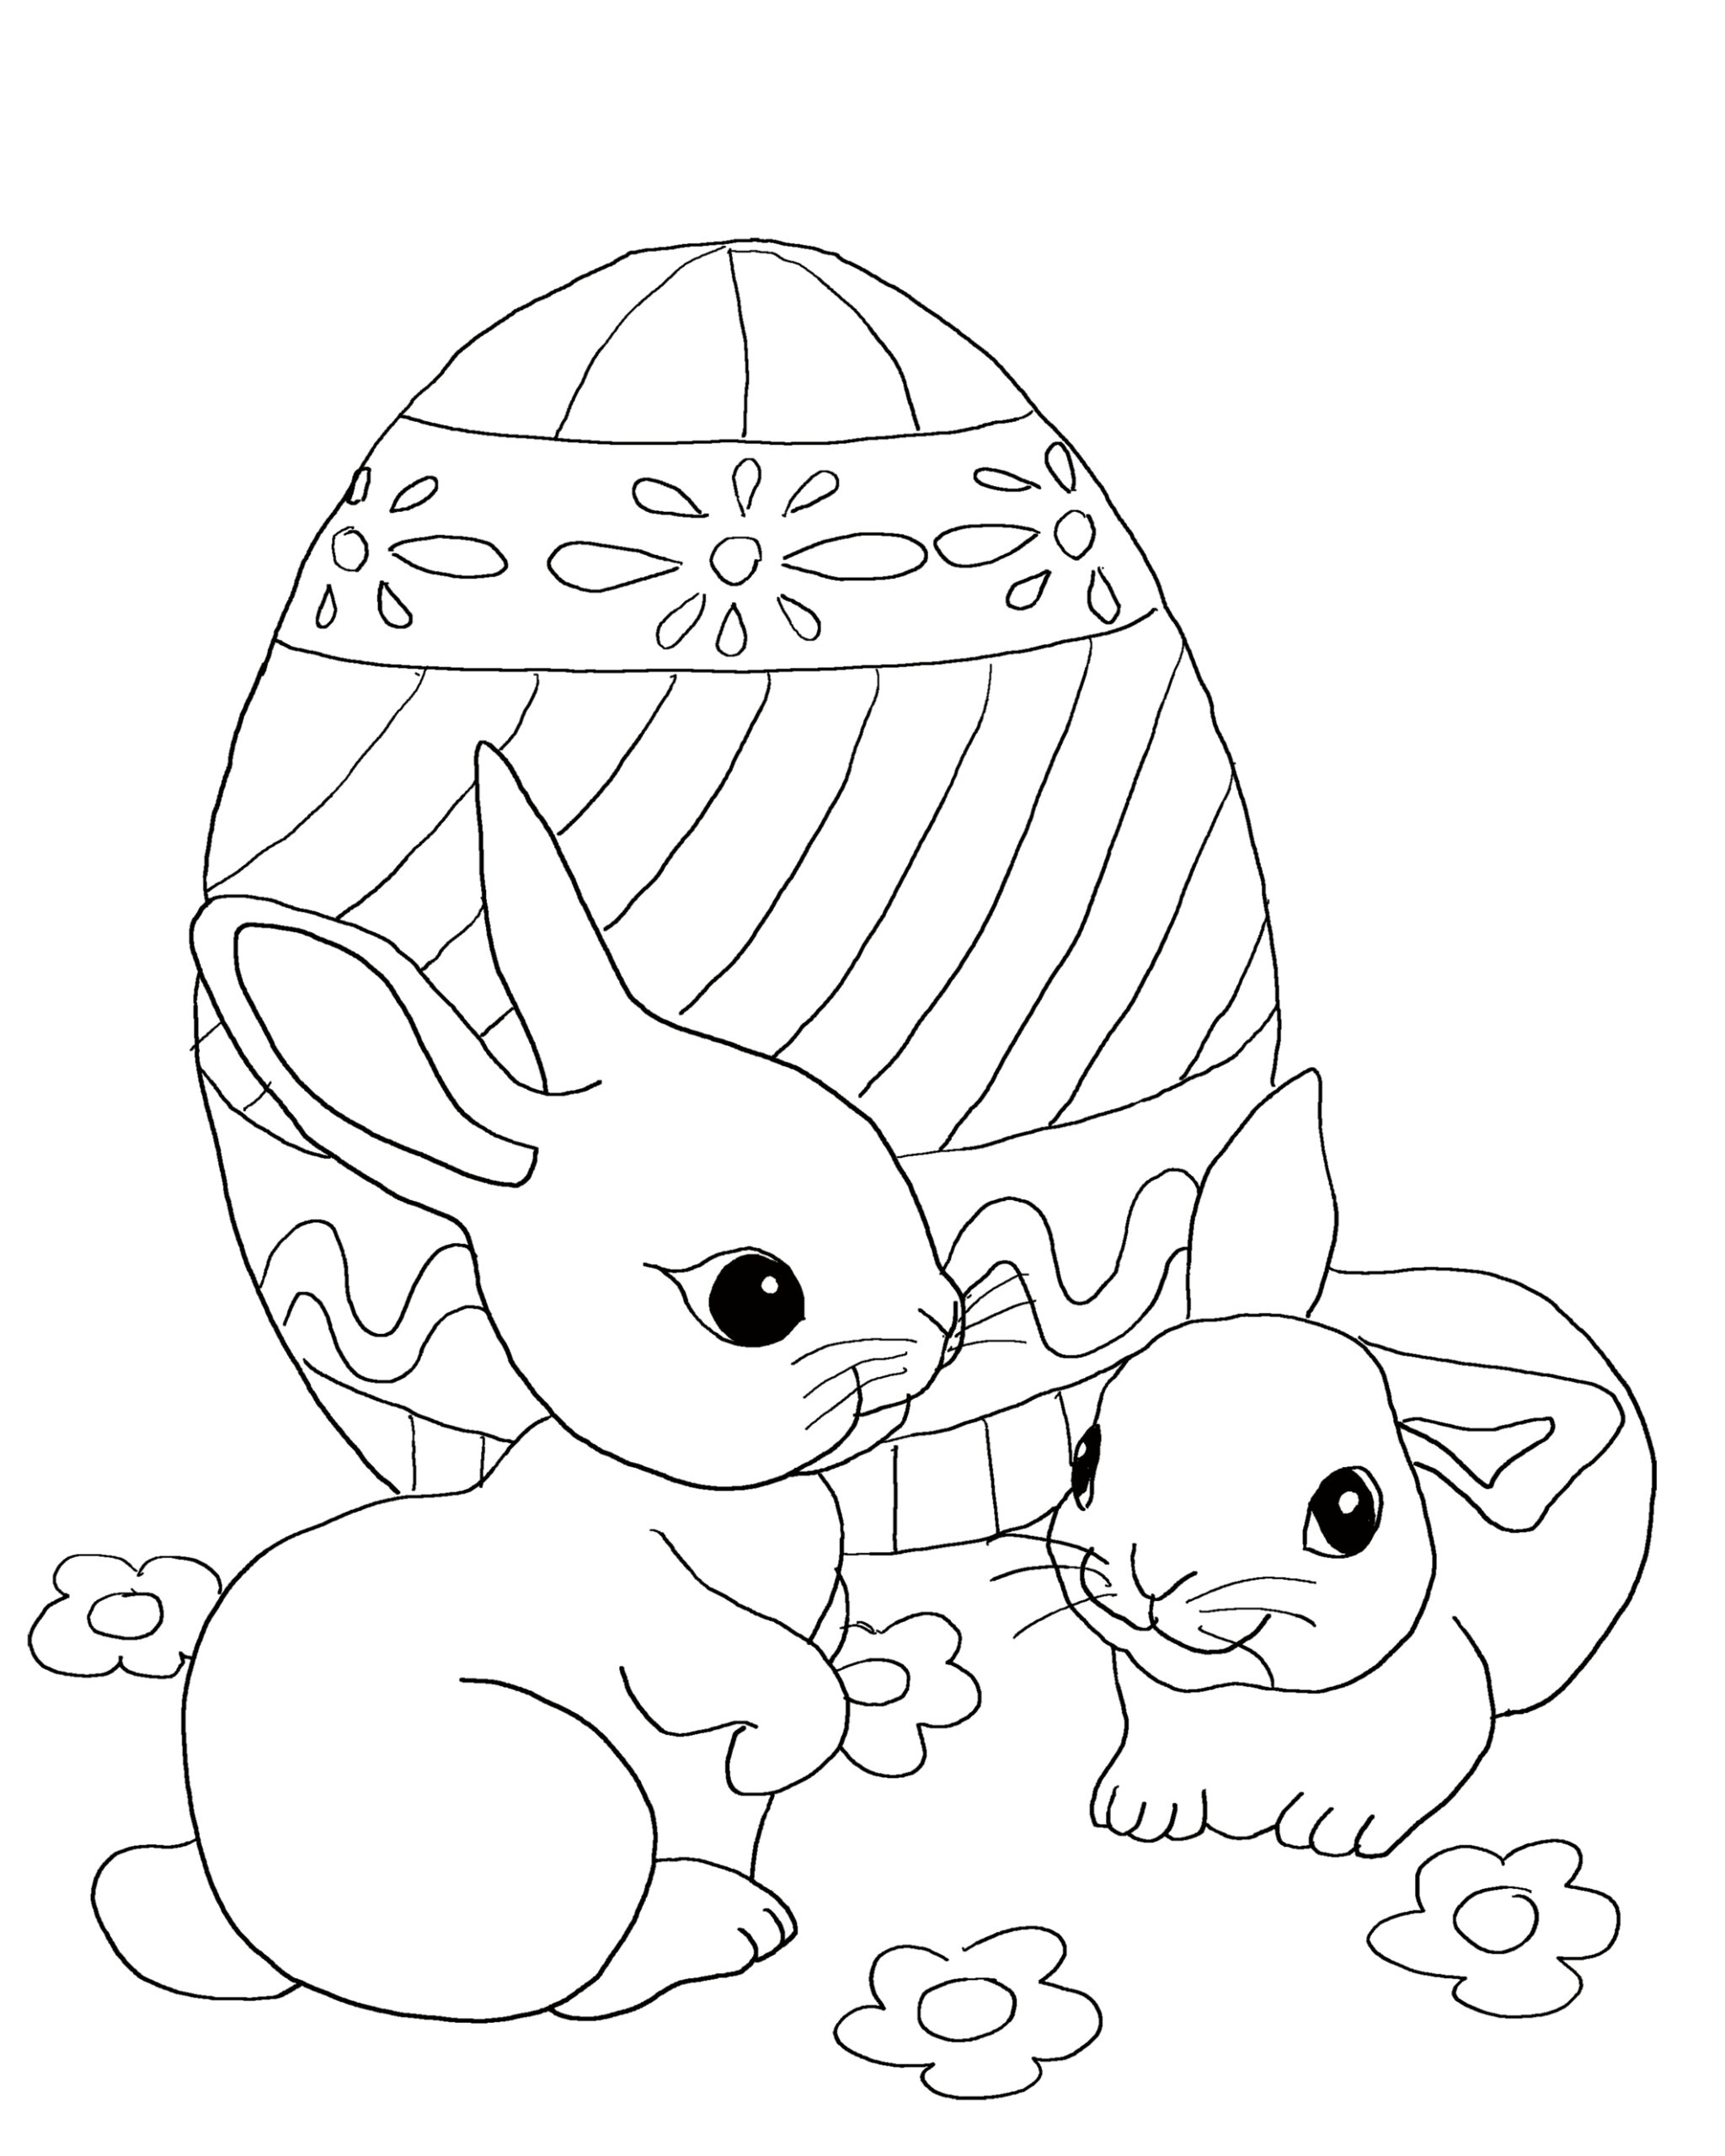 free easter coloring for kids high printing quality bunnies with giant egg truckey coloring pages Easter Coloring Page